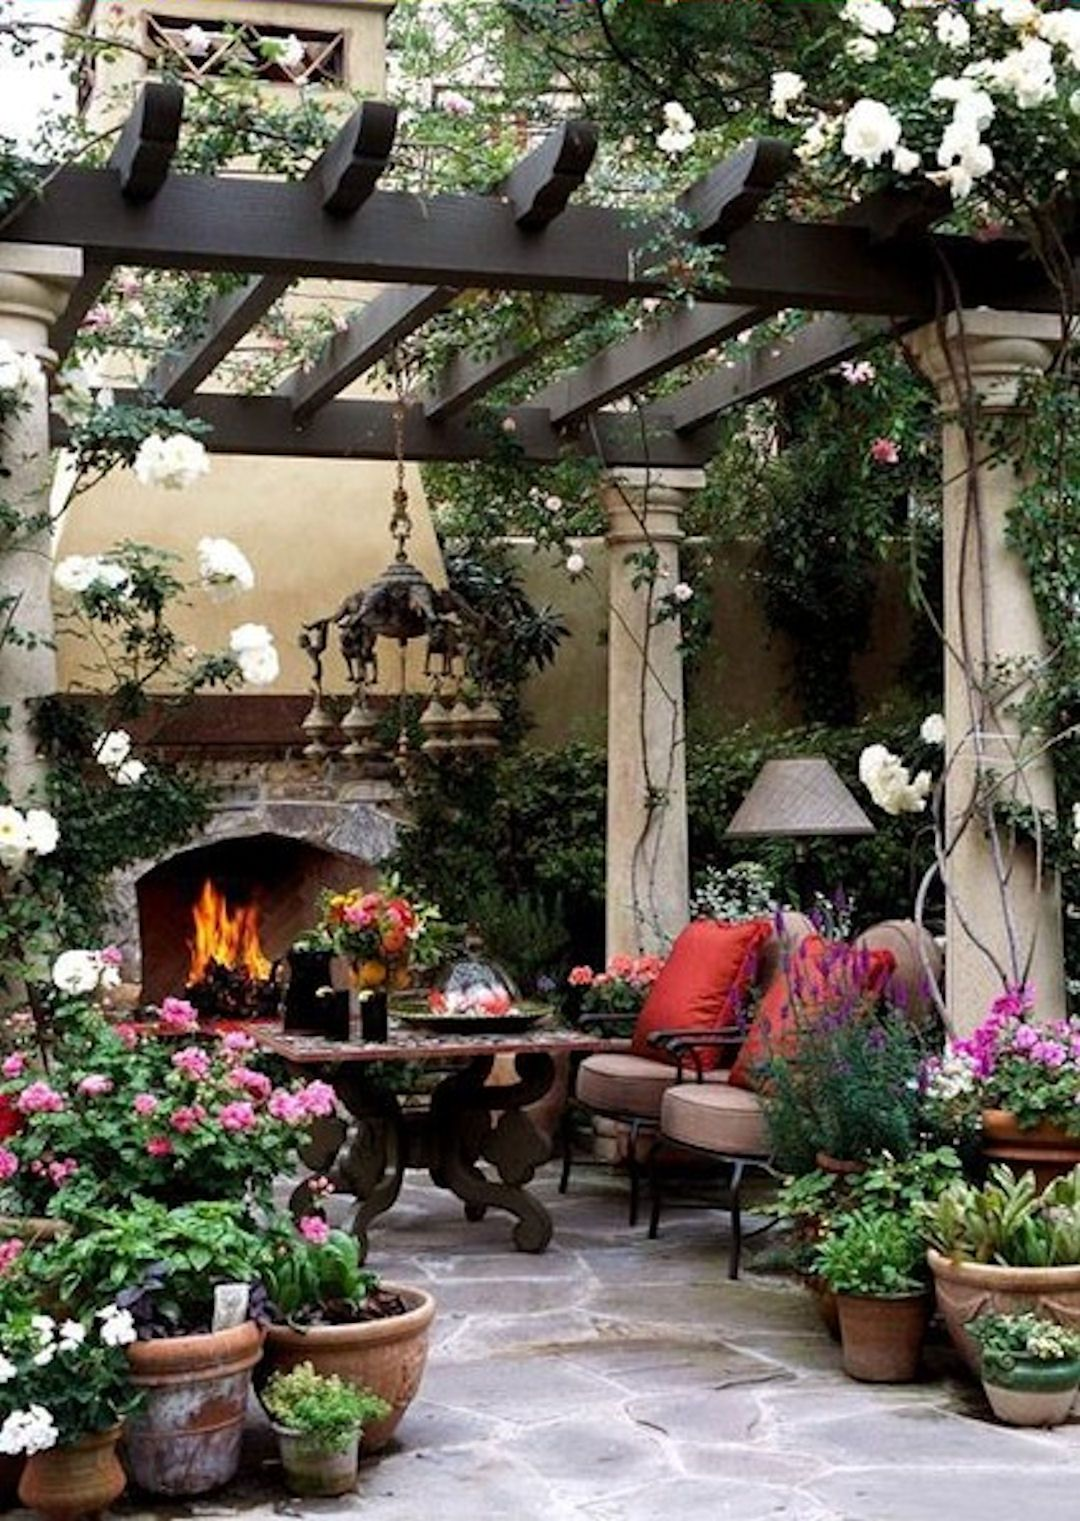 patio gardens   So Inviting   Favorite Places & Spaces